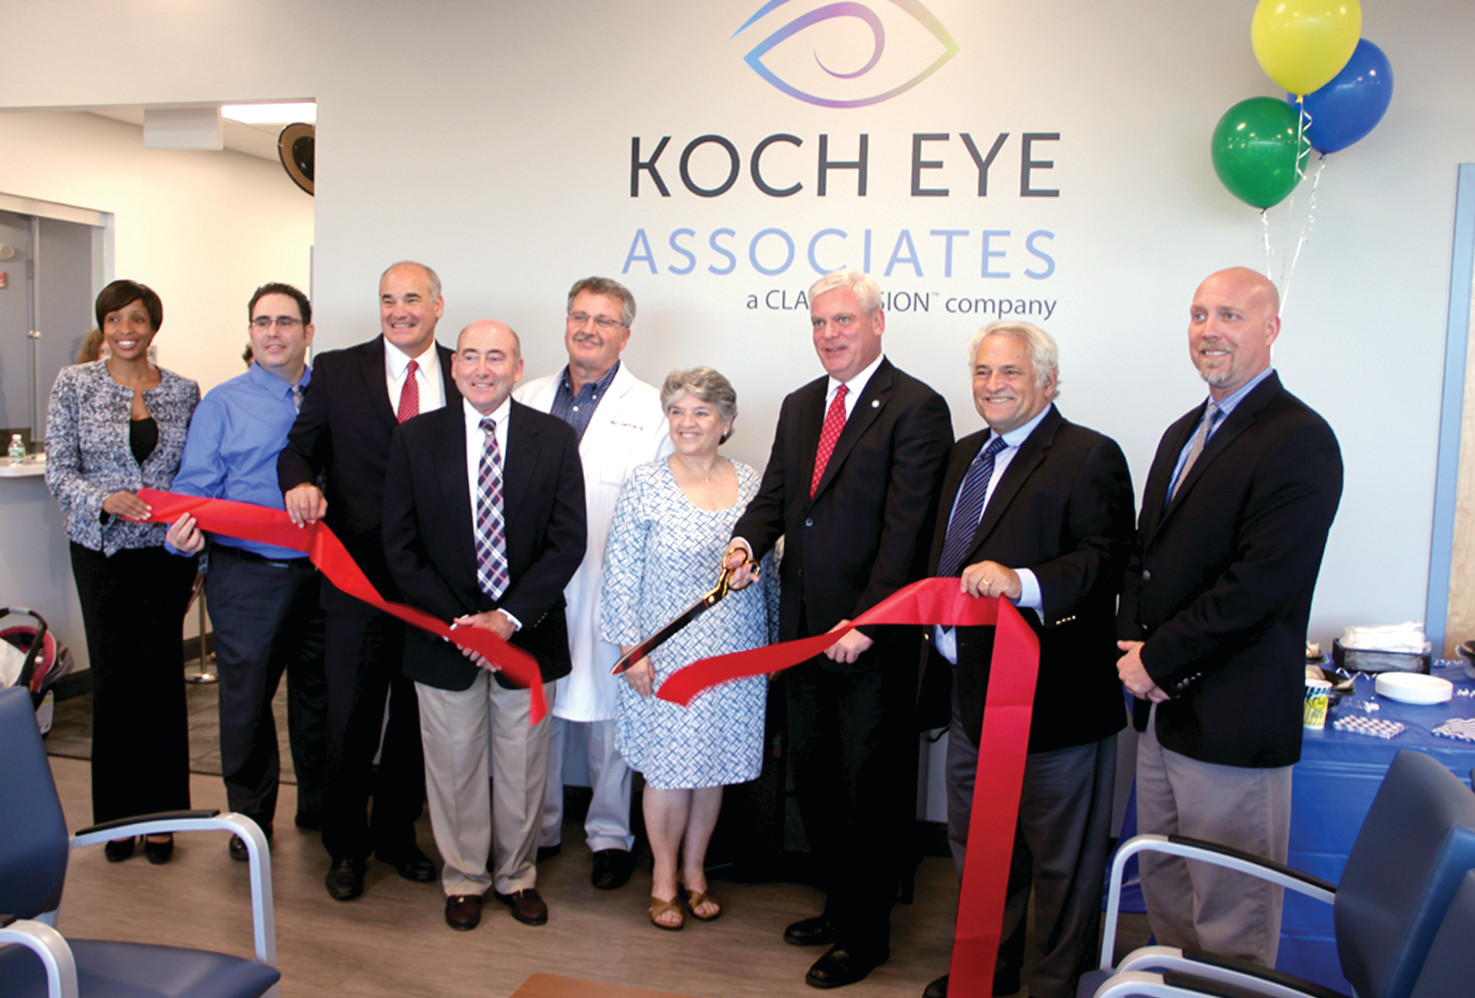 OFFICIAL CUT: Mayor Scott Avedisian snips the ribbon at the official opening of new Koch Eye Associates offices on Greenwich Avenue Tuesday evening.